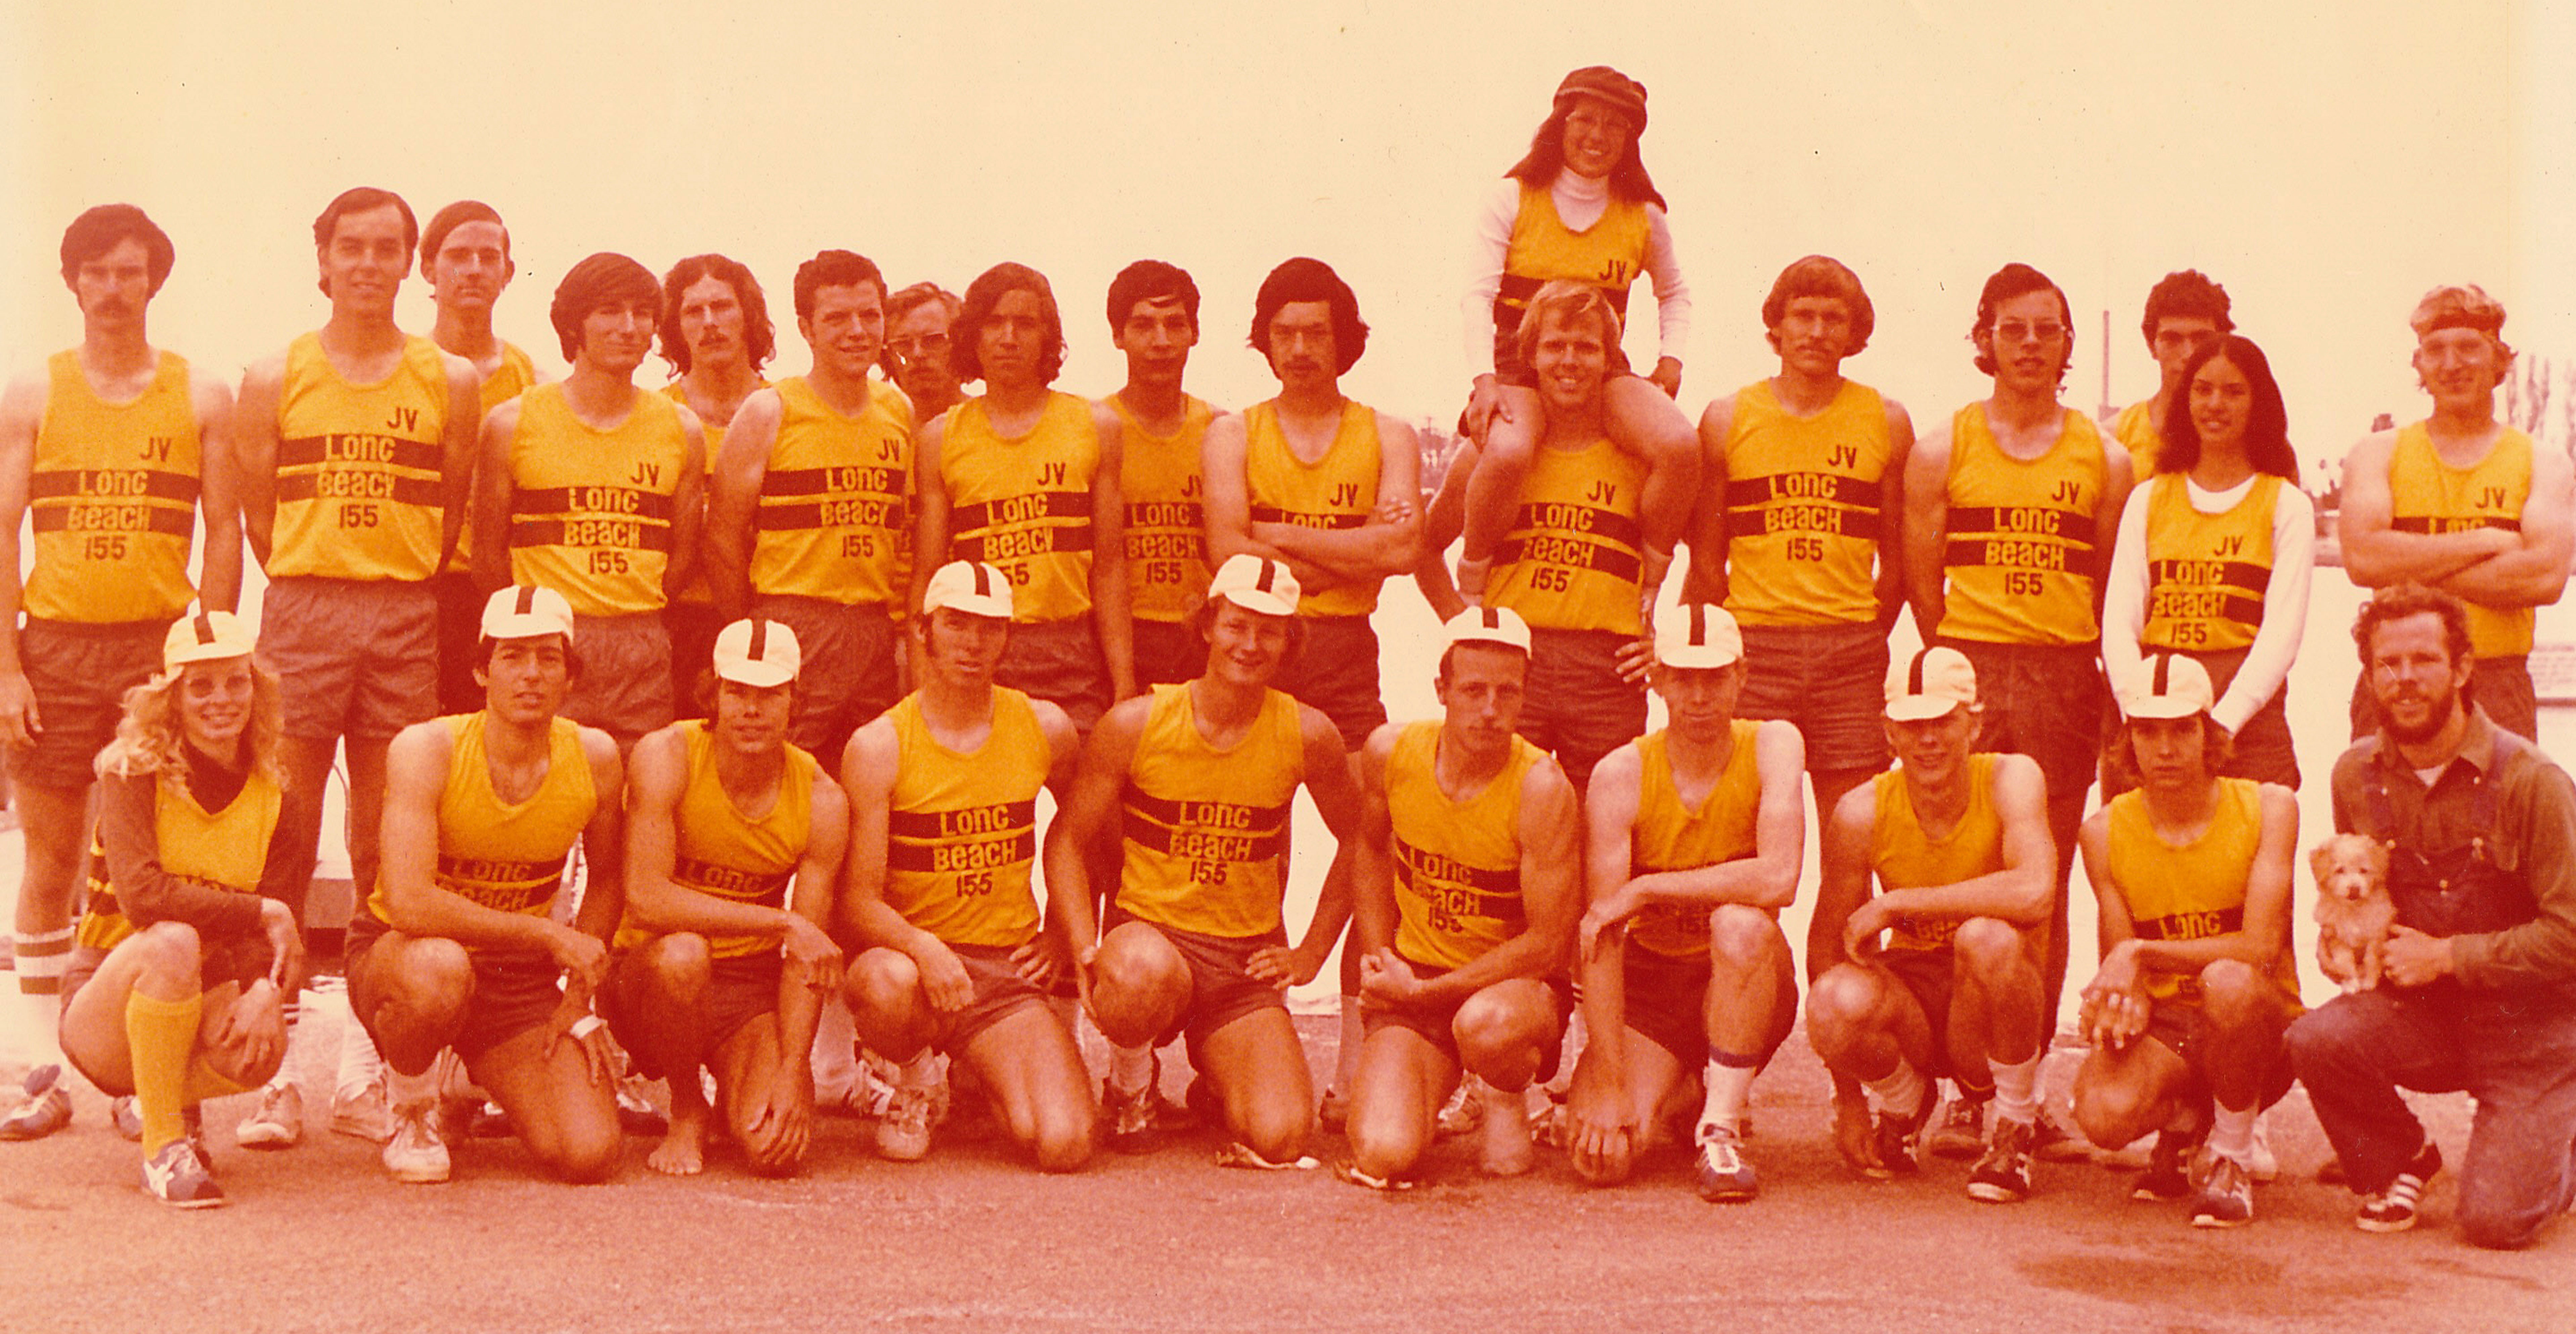 1974 Long Beach Lightweight Rowing Team